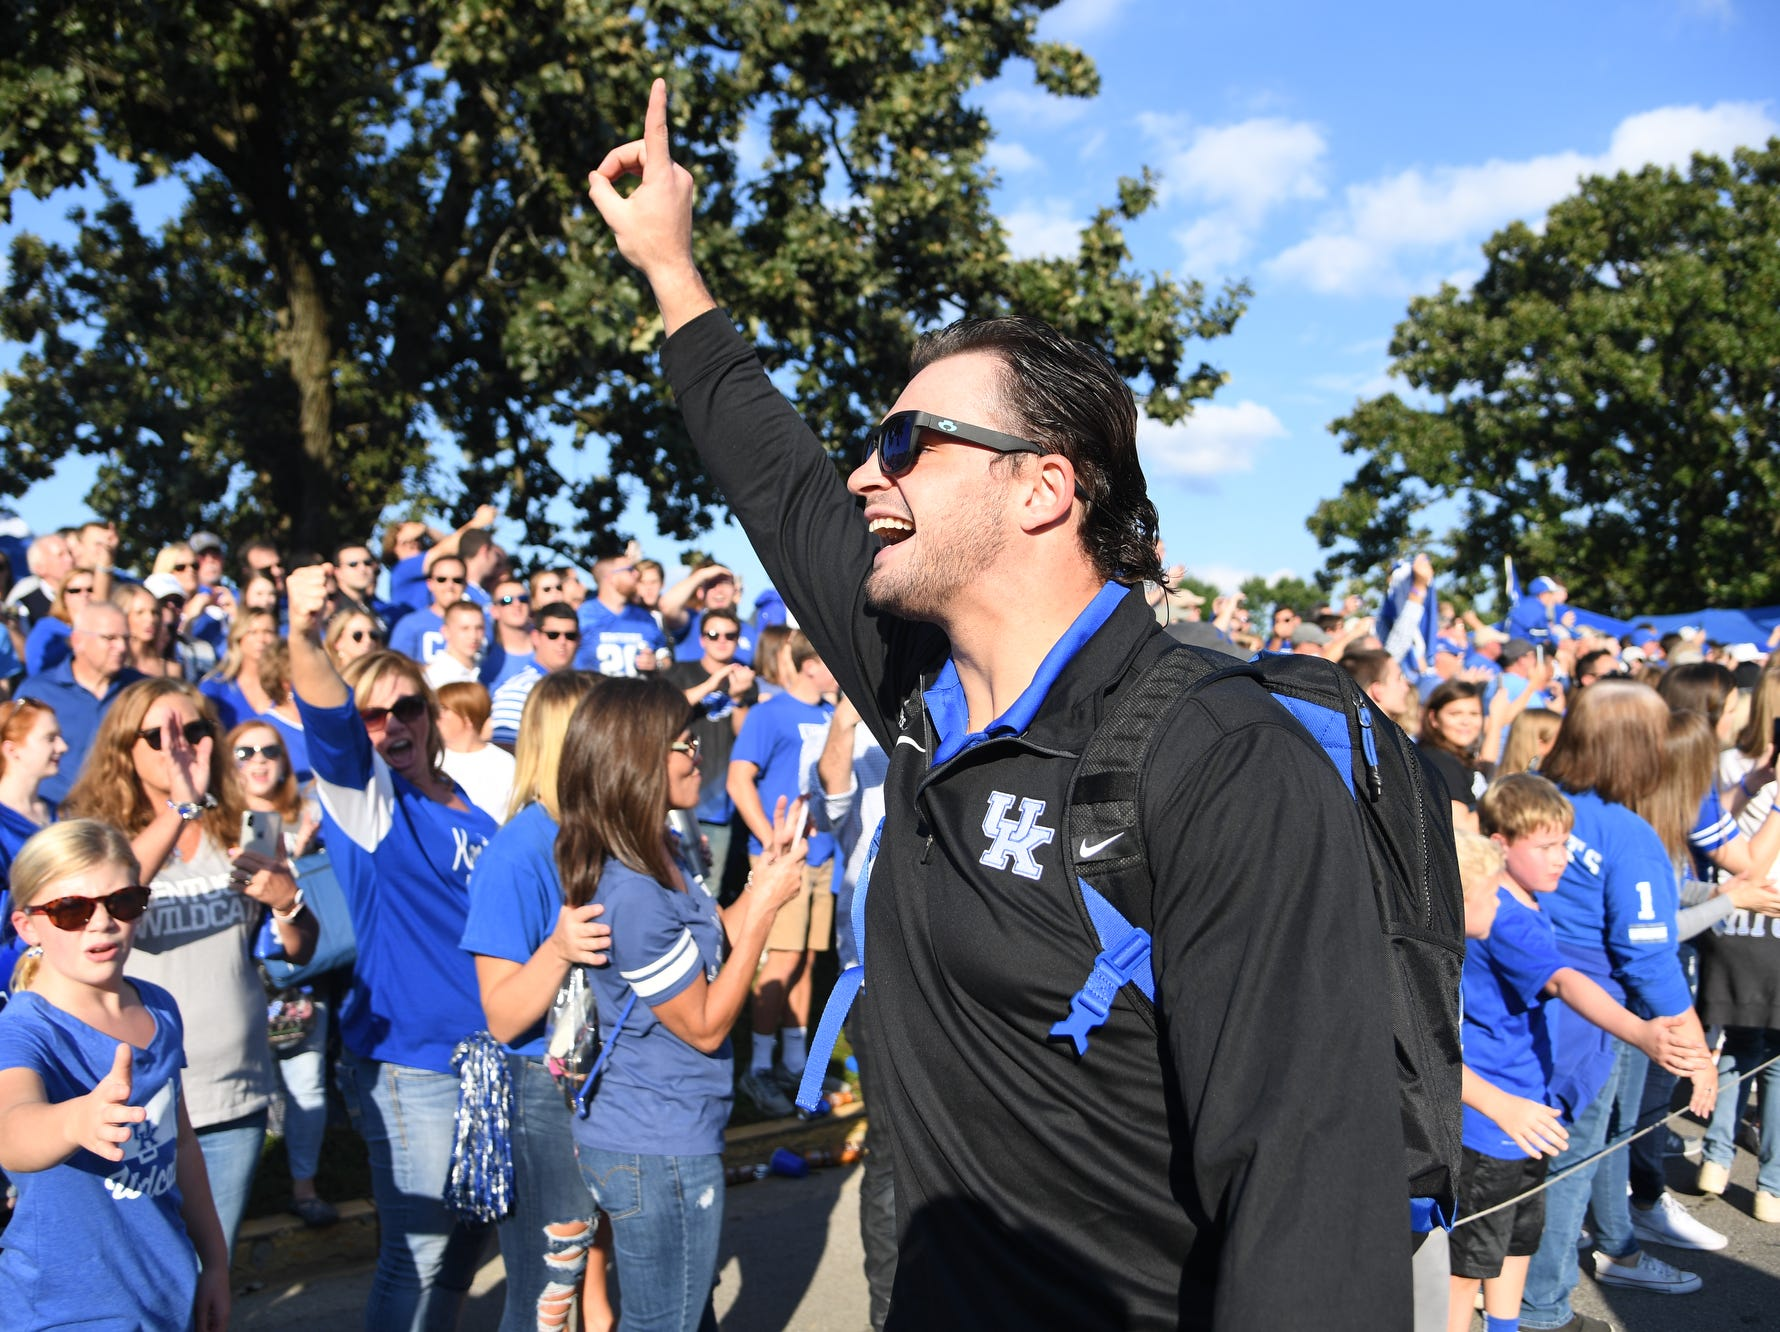 UK MLB Kash Daniel pumps up the crowd during the Cat Walk before the University of Kentucky football game against South Carolina at Kroger Field in Lexington, Kentucky on Saturday, September 29, 2018.